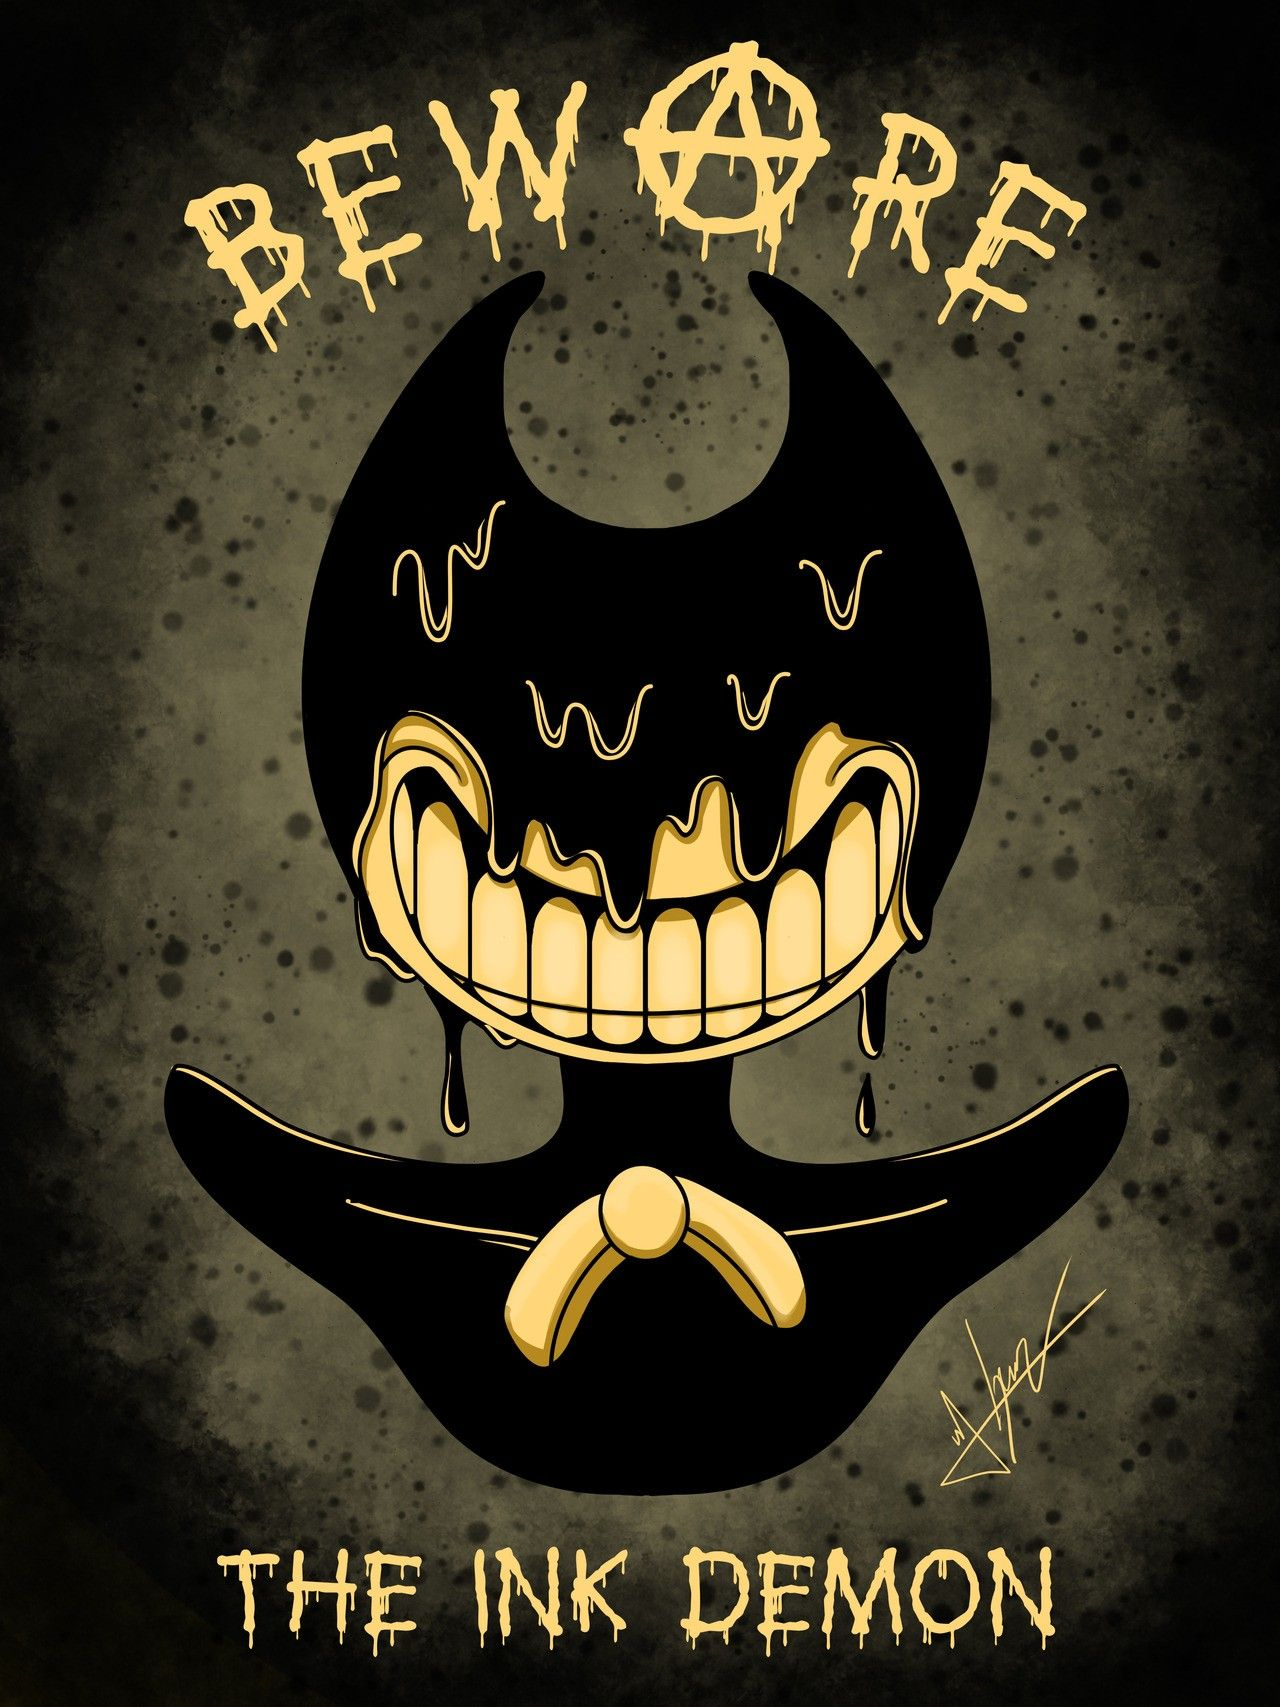 Pin By Luky 134 On Batim Batdr Binr Dctl Bendy And The Ink Machine Mechanical Art Vintage Cartoon